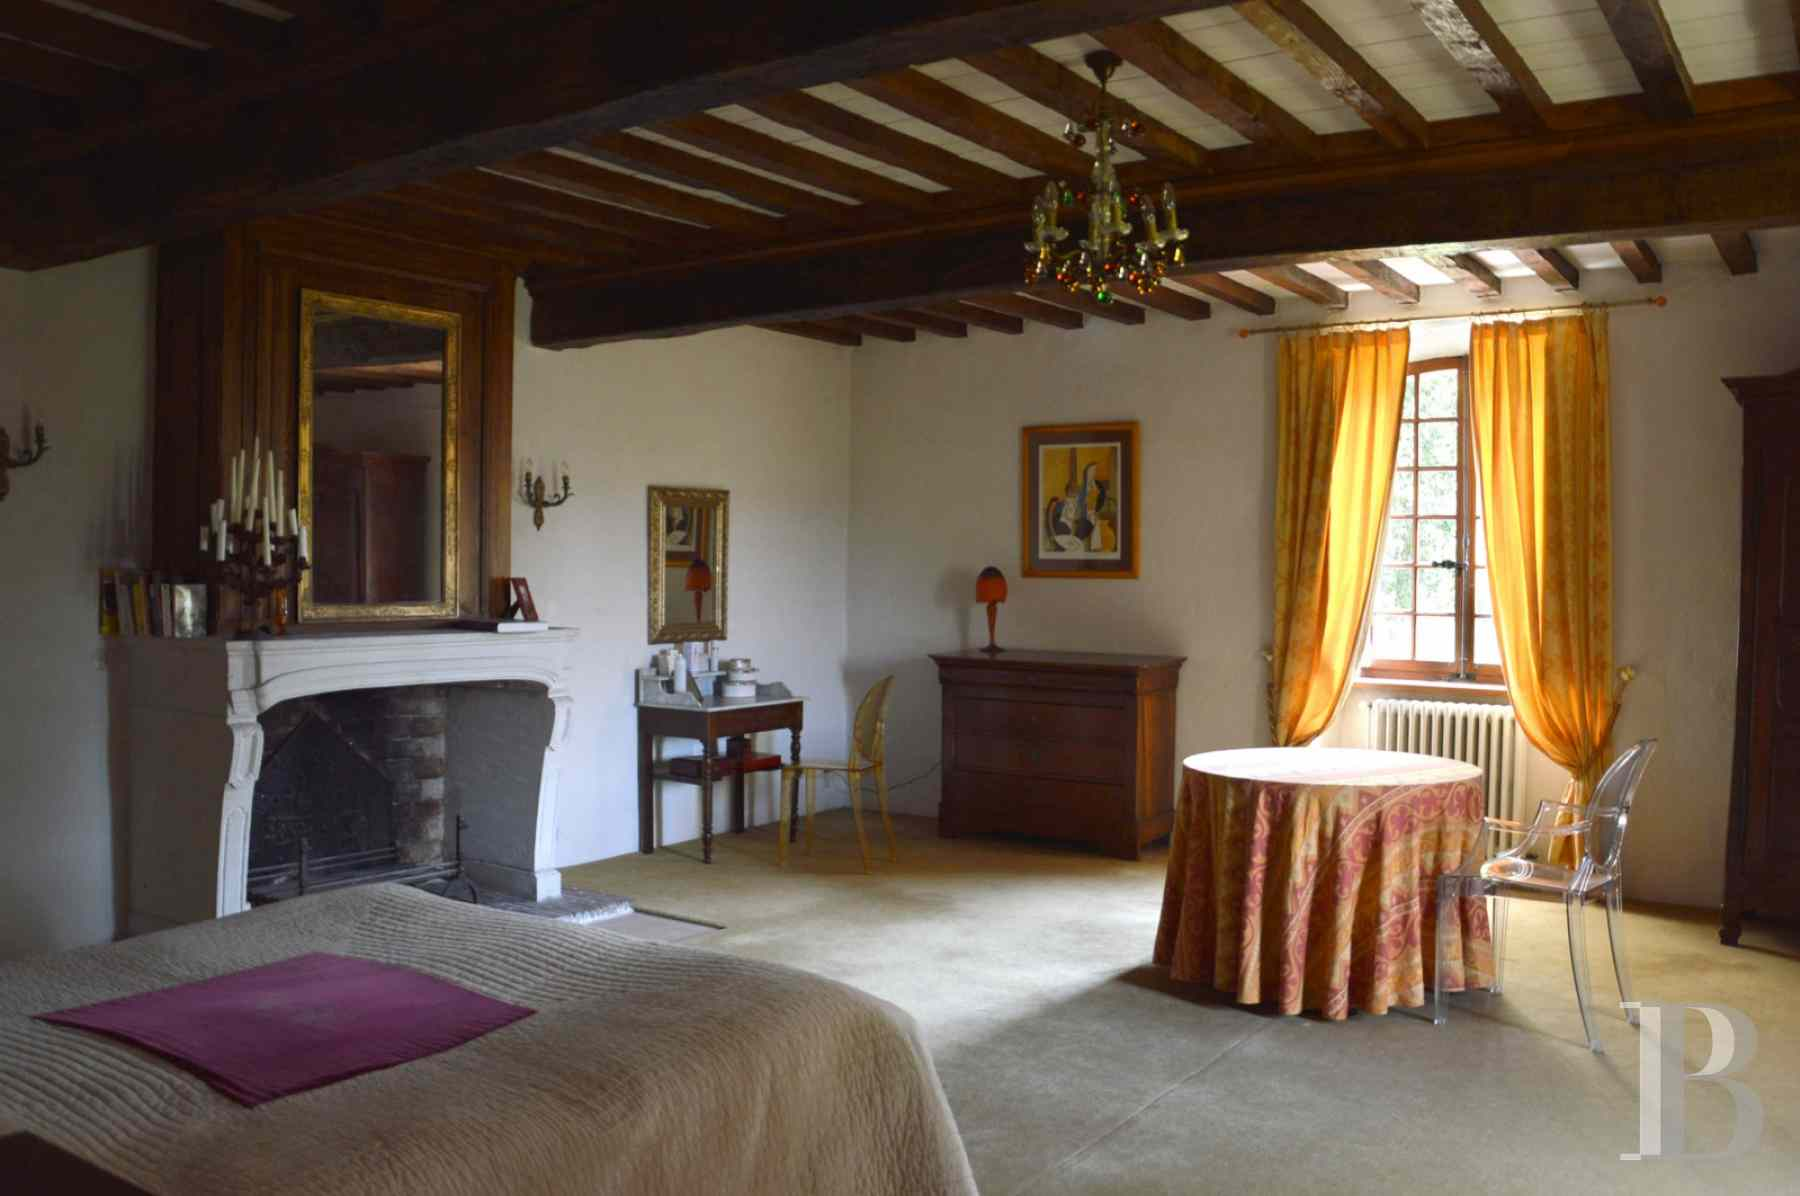 character properties France rhones alps residence 17th - 7 zoom